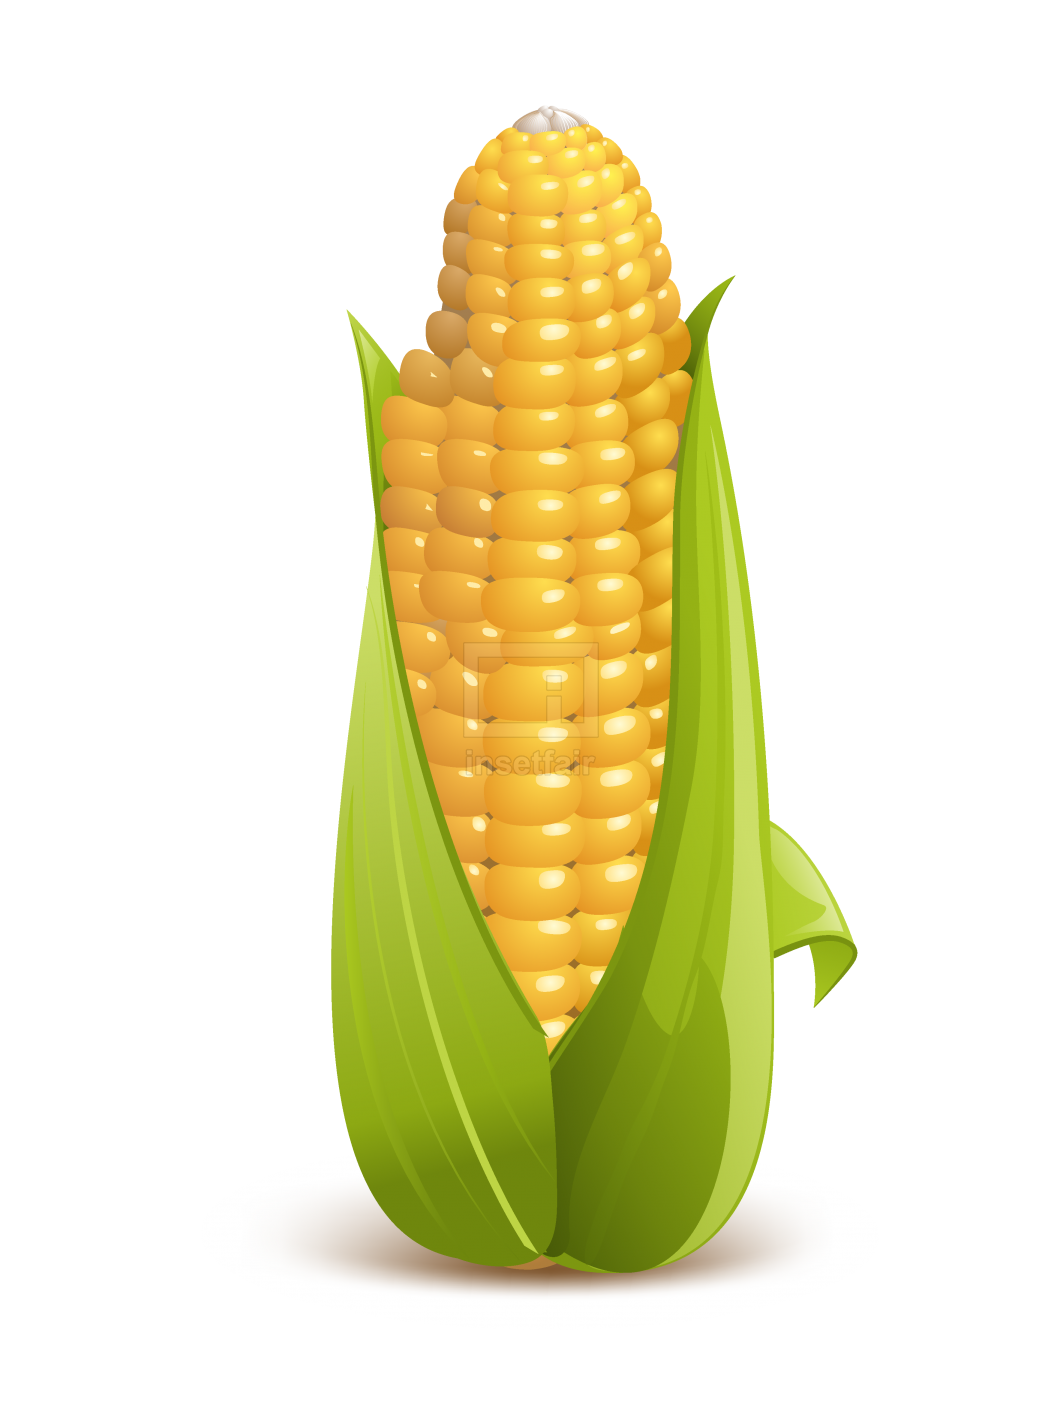 Corn vegetable realistic vector illustration royalty free image